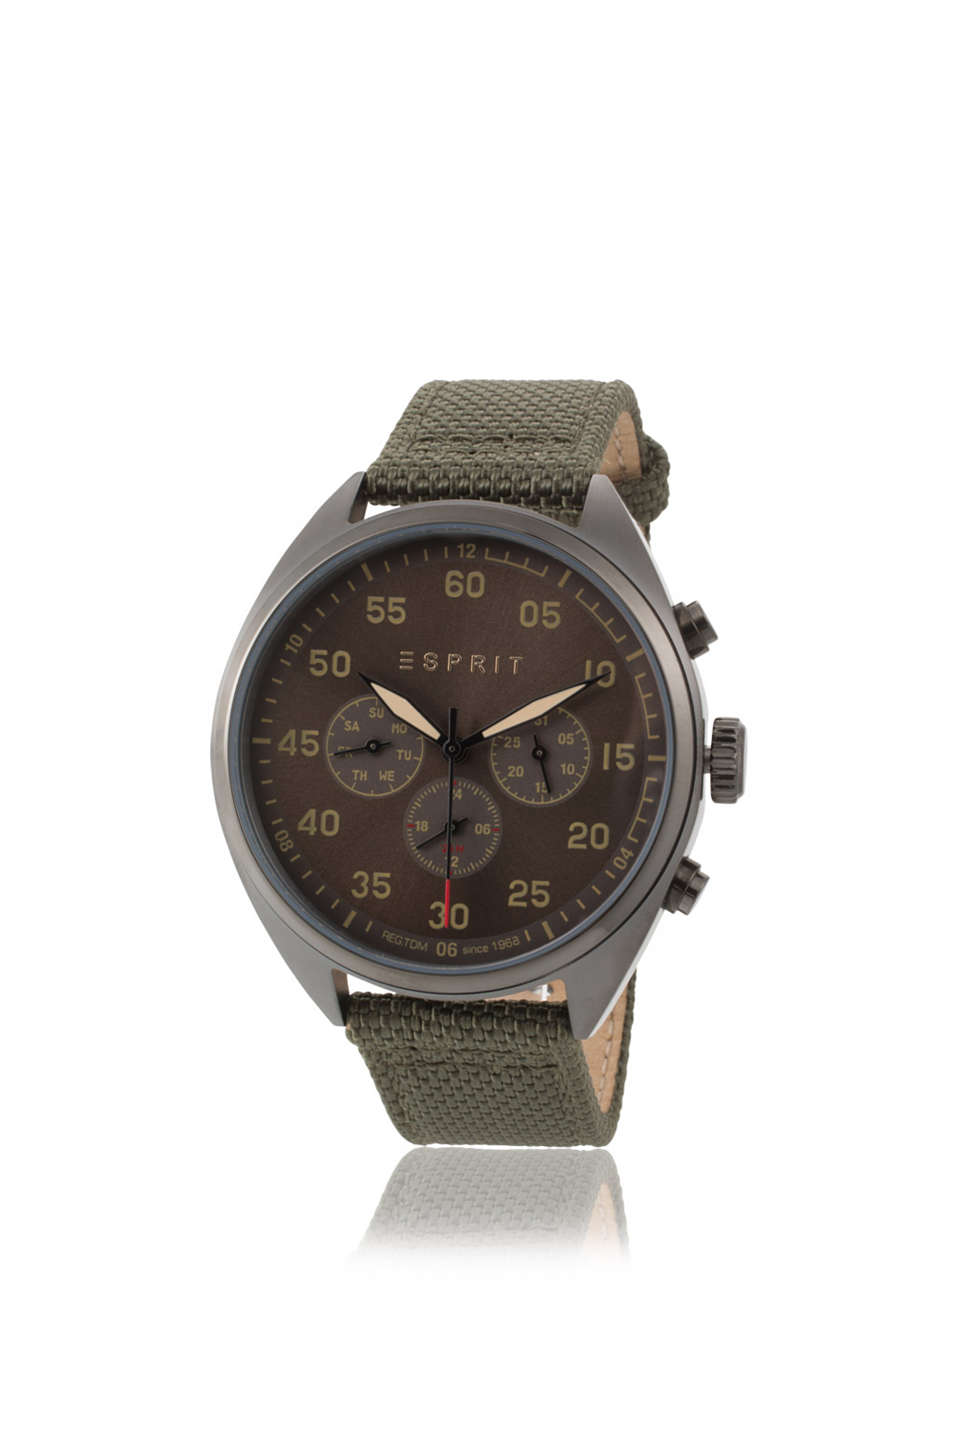 Dark stainless-steel chrono, olive green woven strap, day/date display, 24 hour + 2nd time zone, Ø approx. 43 mm